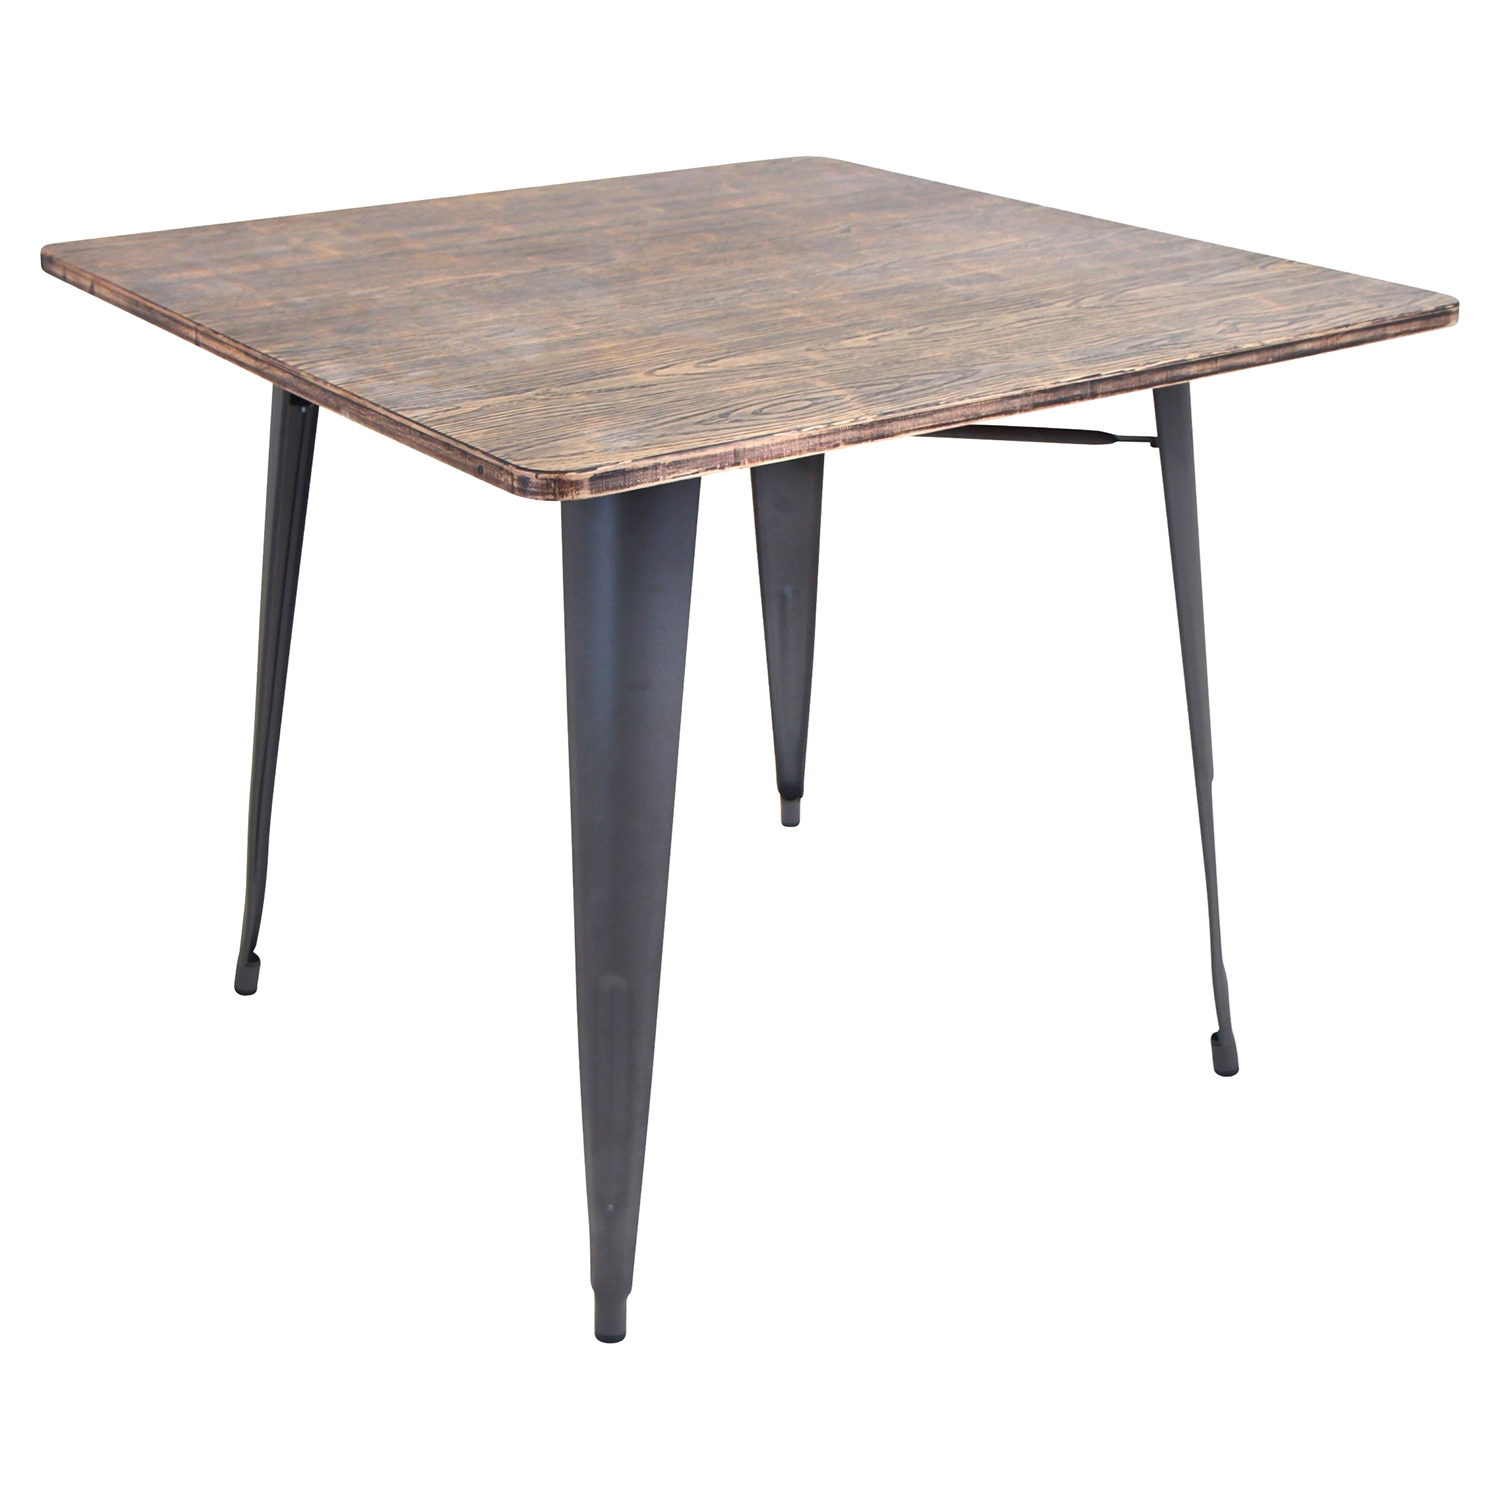 Oregon Square Dining Table - Gray - LMS-DT-TW-ORTB-SQ